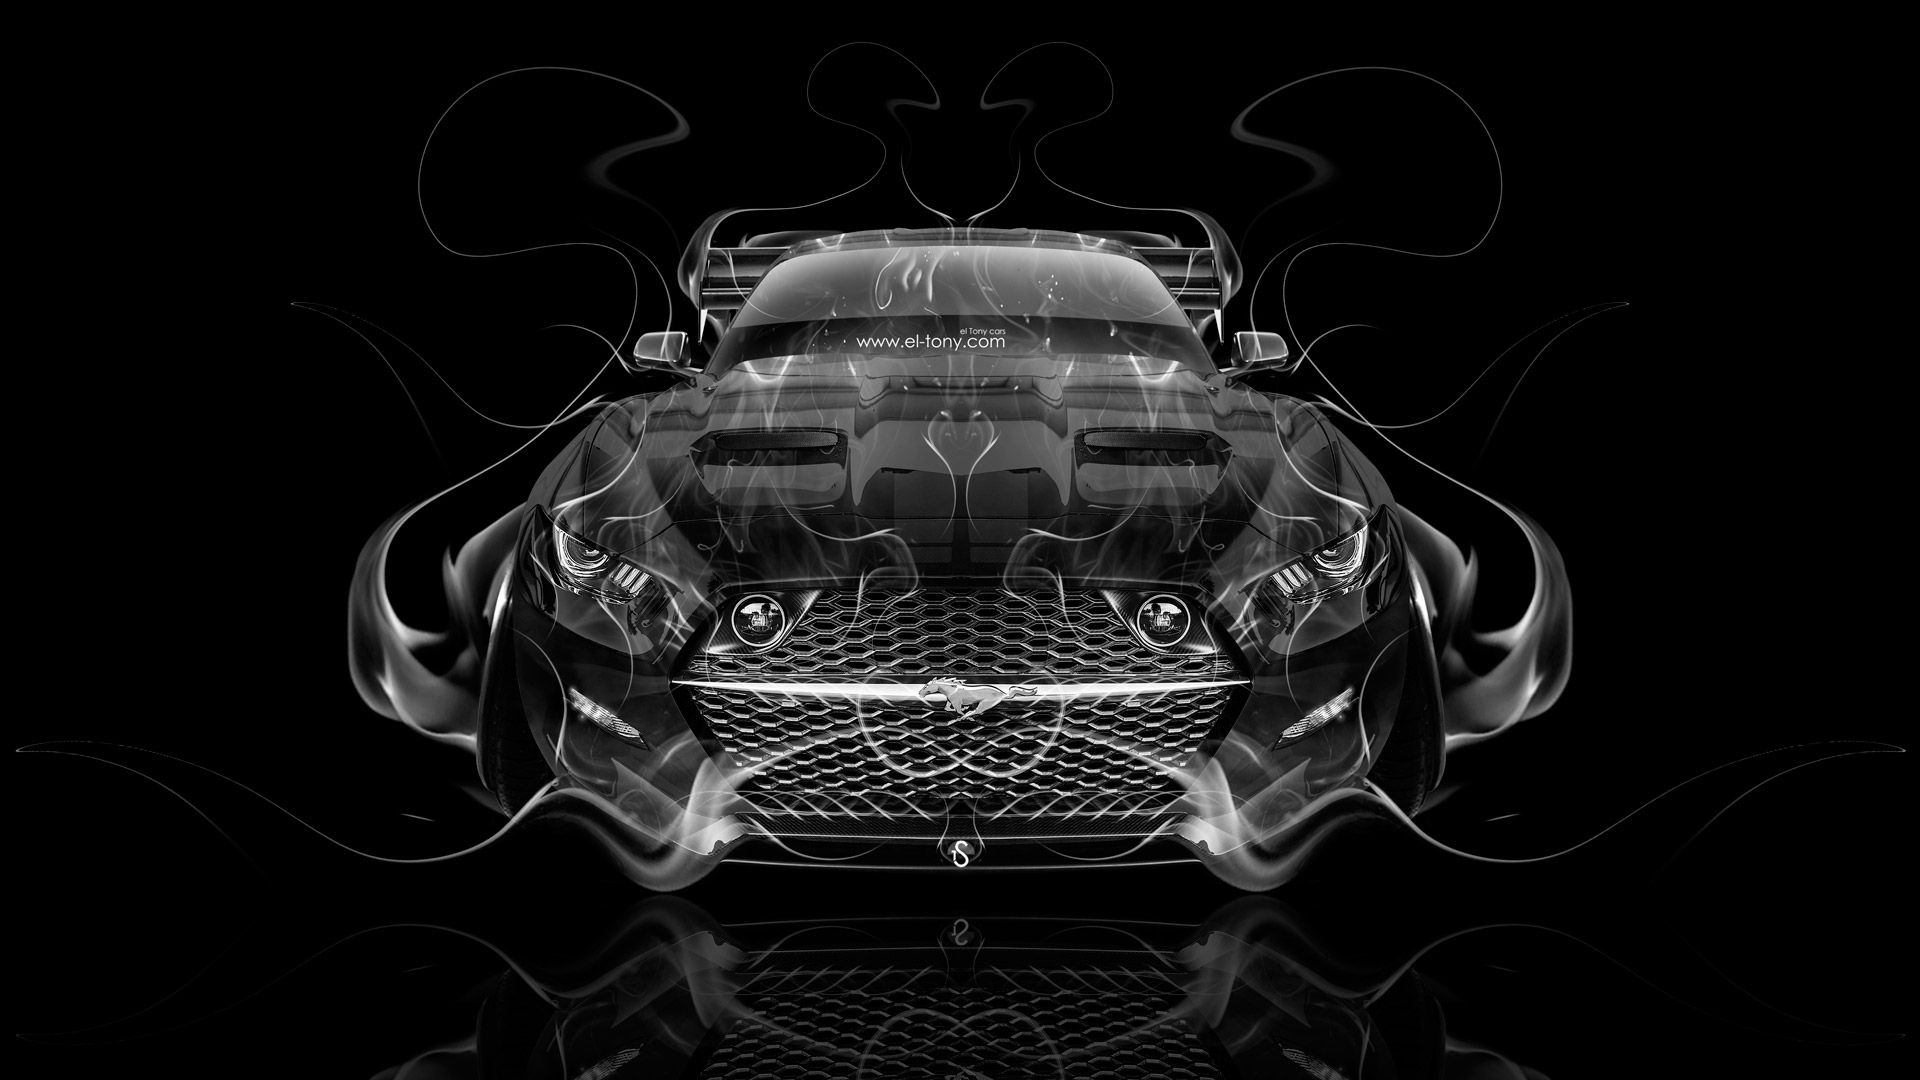 Ford Mustang Muscle Back Fire Abstract Car 2014 Art HD Wallpapers Design By Tony Kokhan [www.el Tony.com]  | El Tony.com | Pinterest | Ford Mustang, Mustang ...